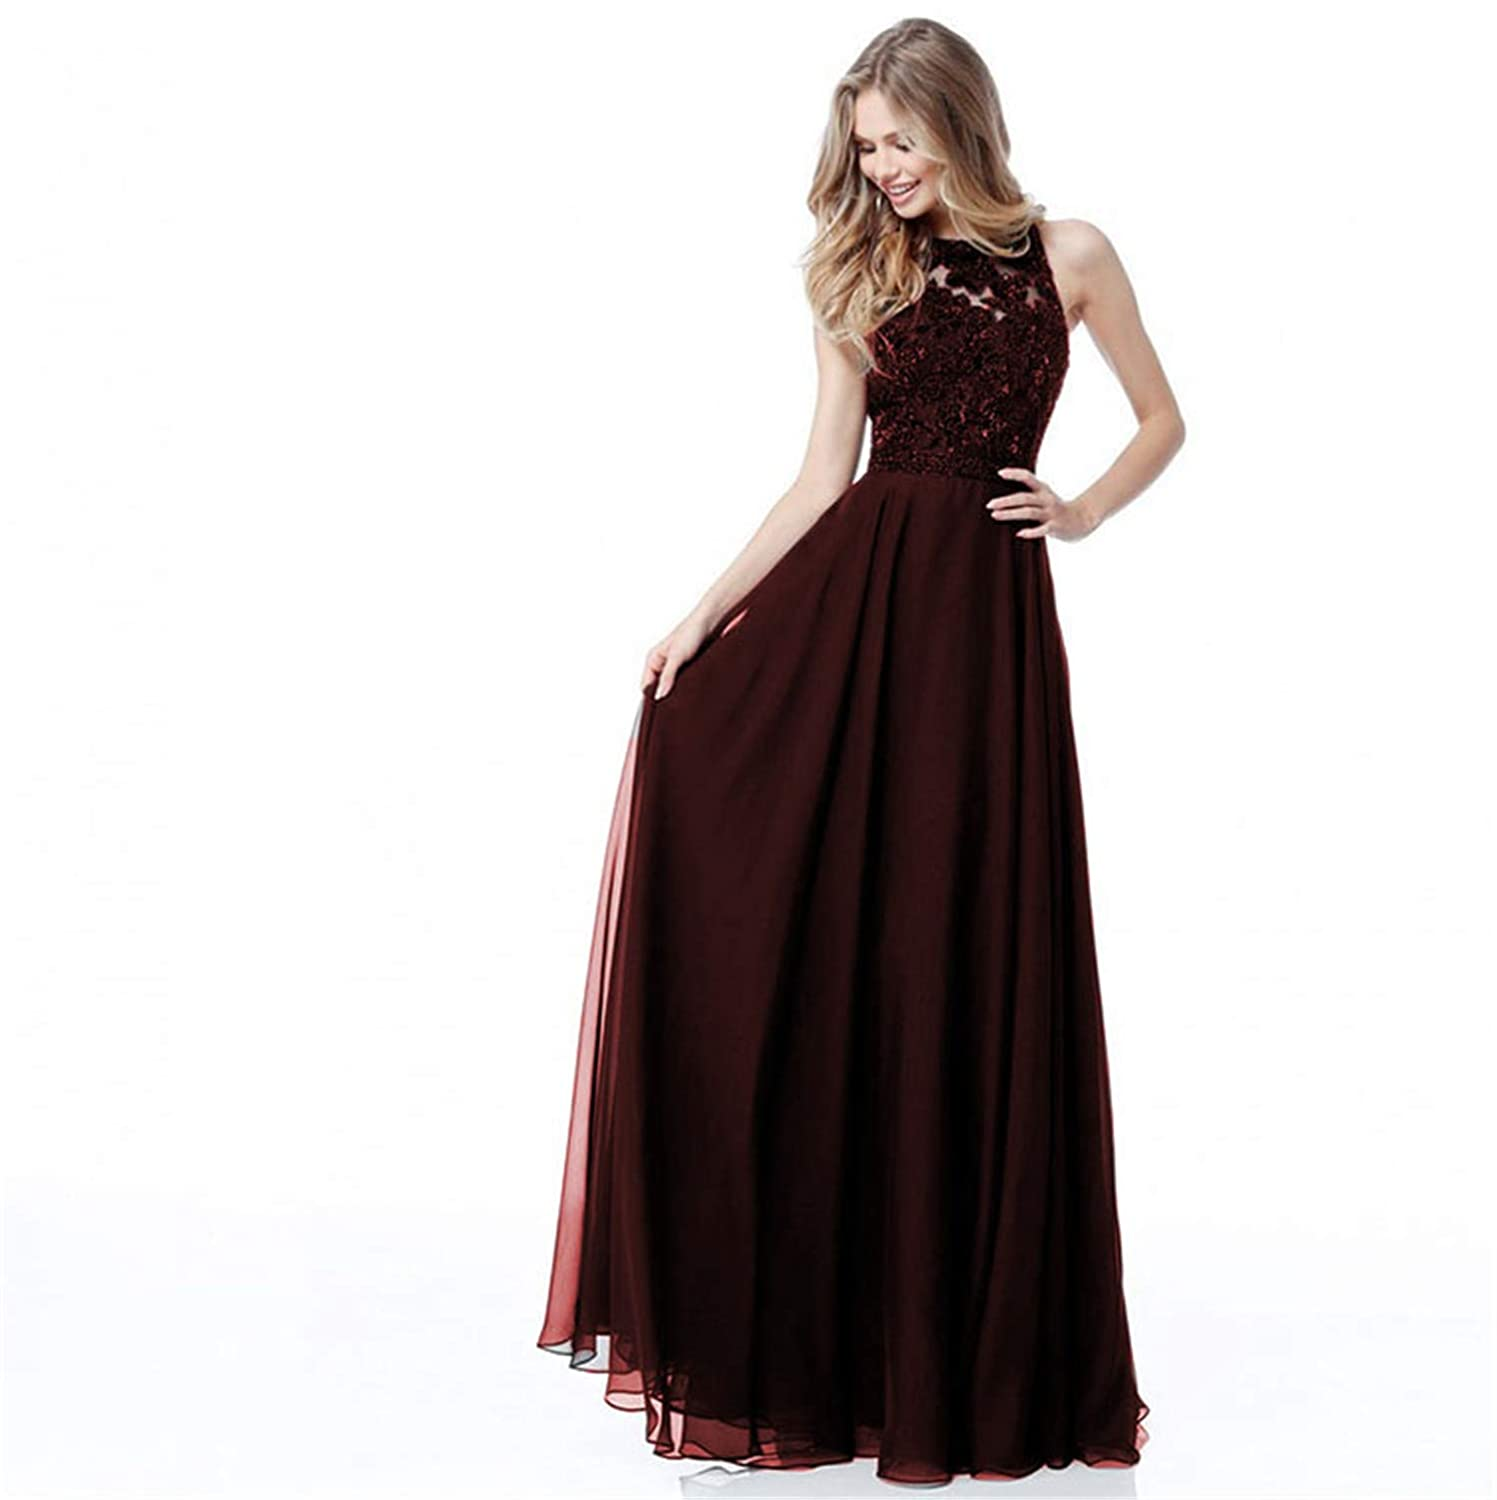 Burgundy Ruiyuhong Women's Sexy Backless Bridesmaid Dresses Long Wedding Party Gown